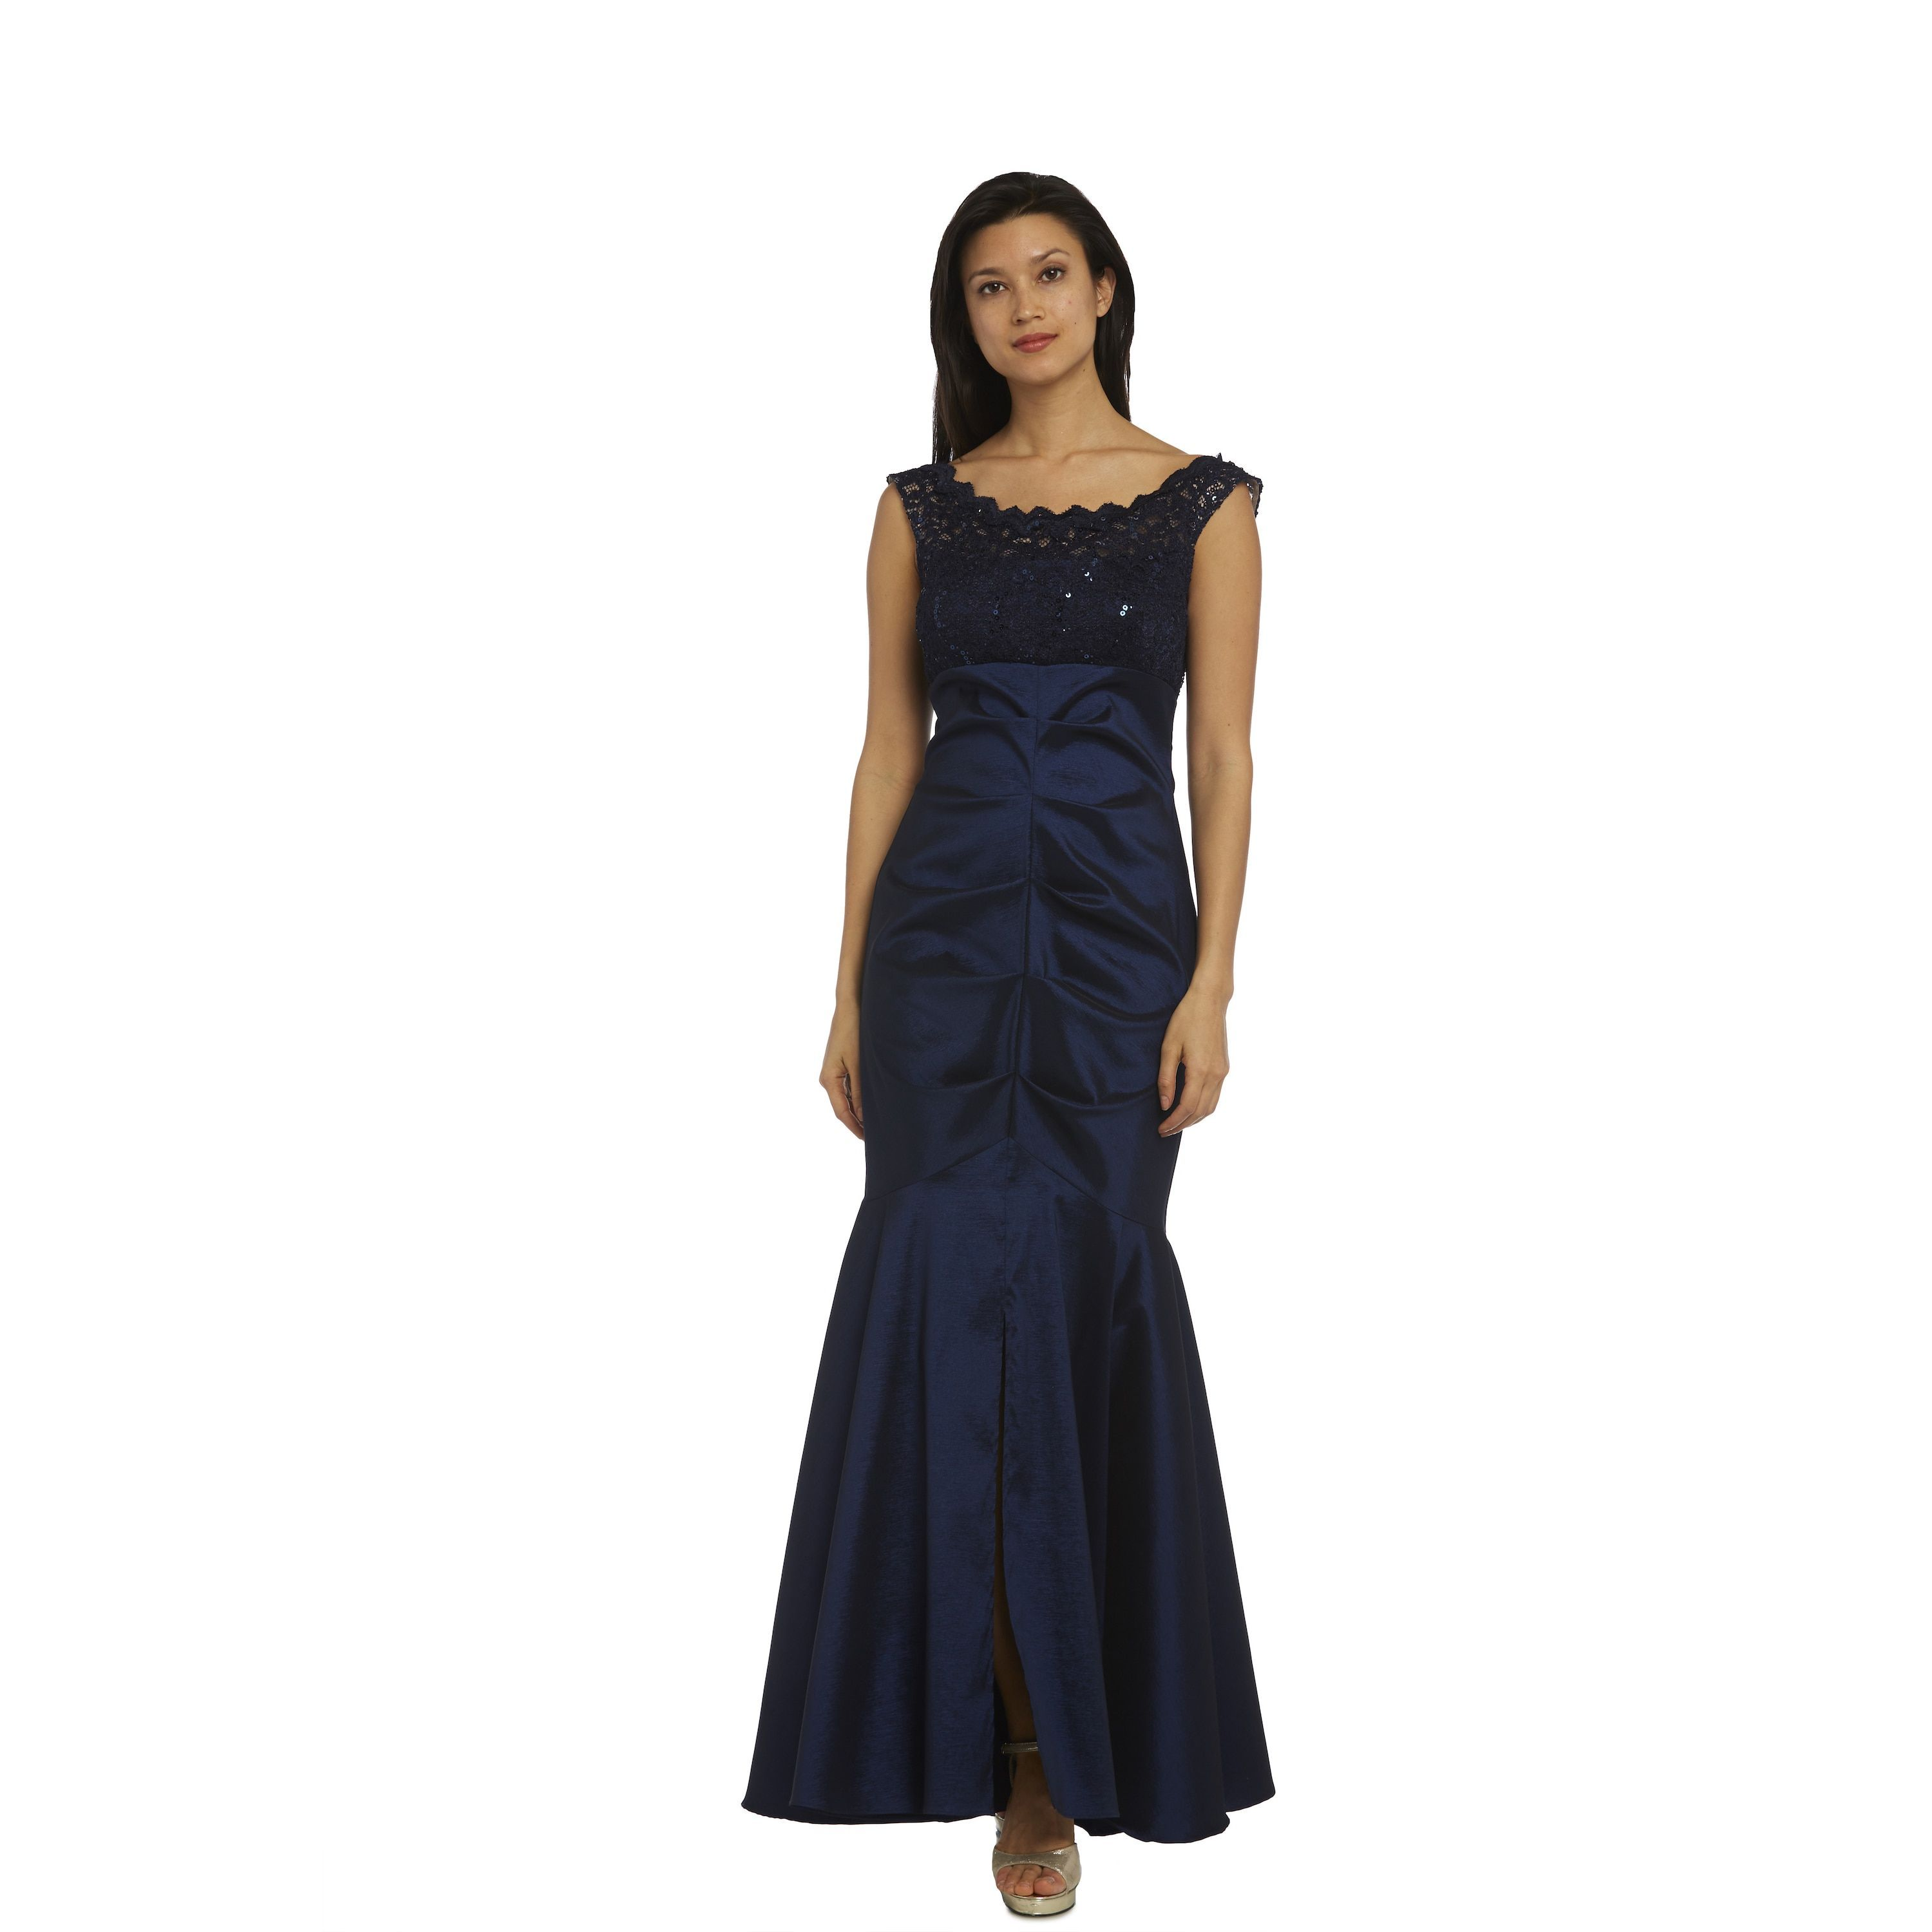 Royal blue lace dress styles  R and M Richards Womenus Evening Gown  Products  Pinterest  Lace